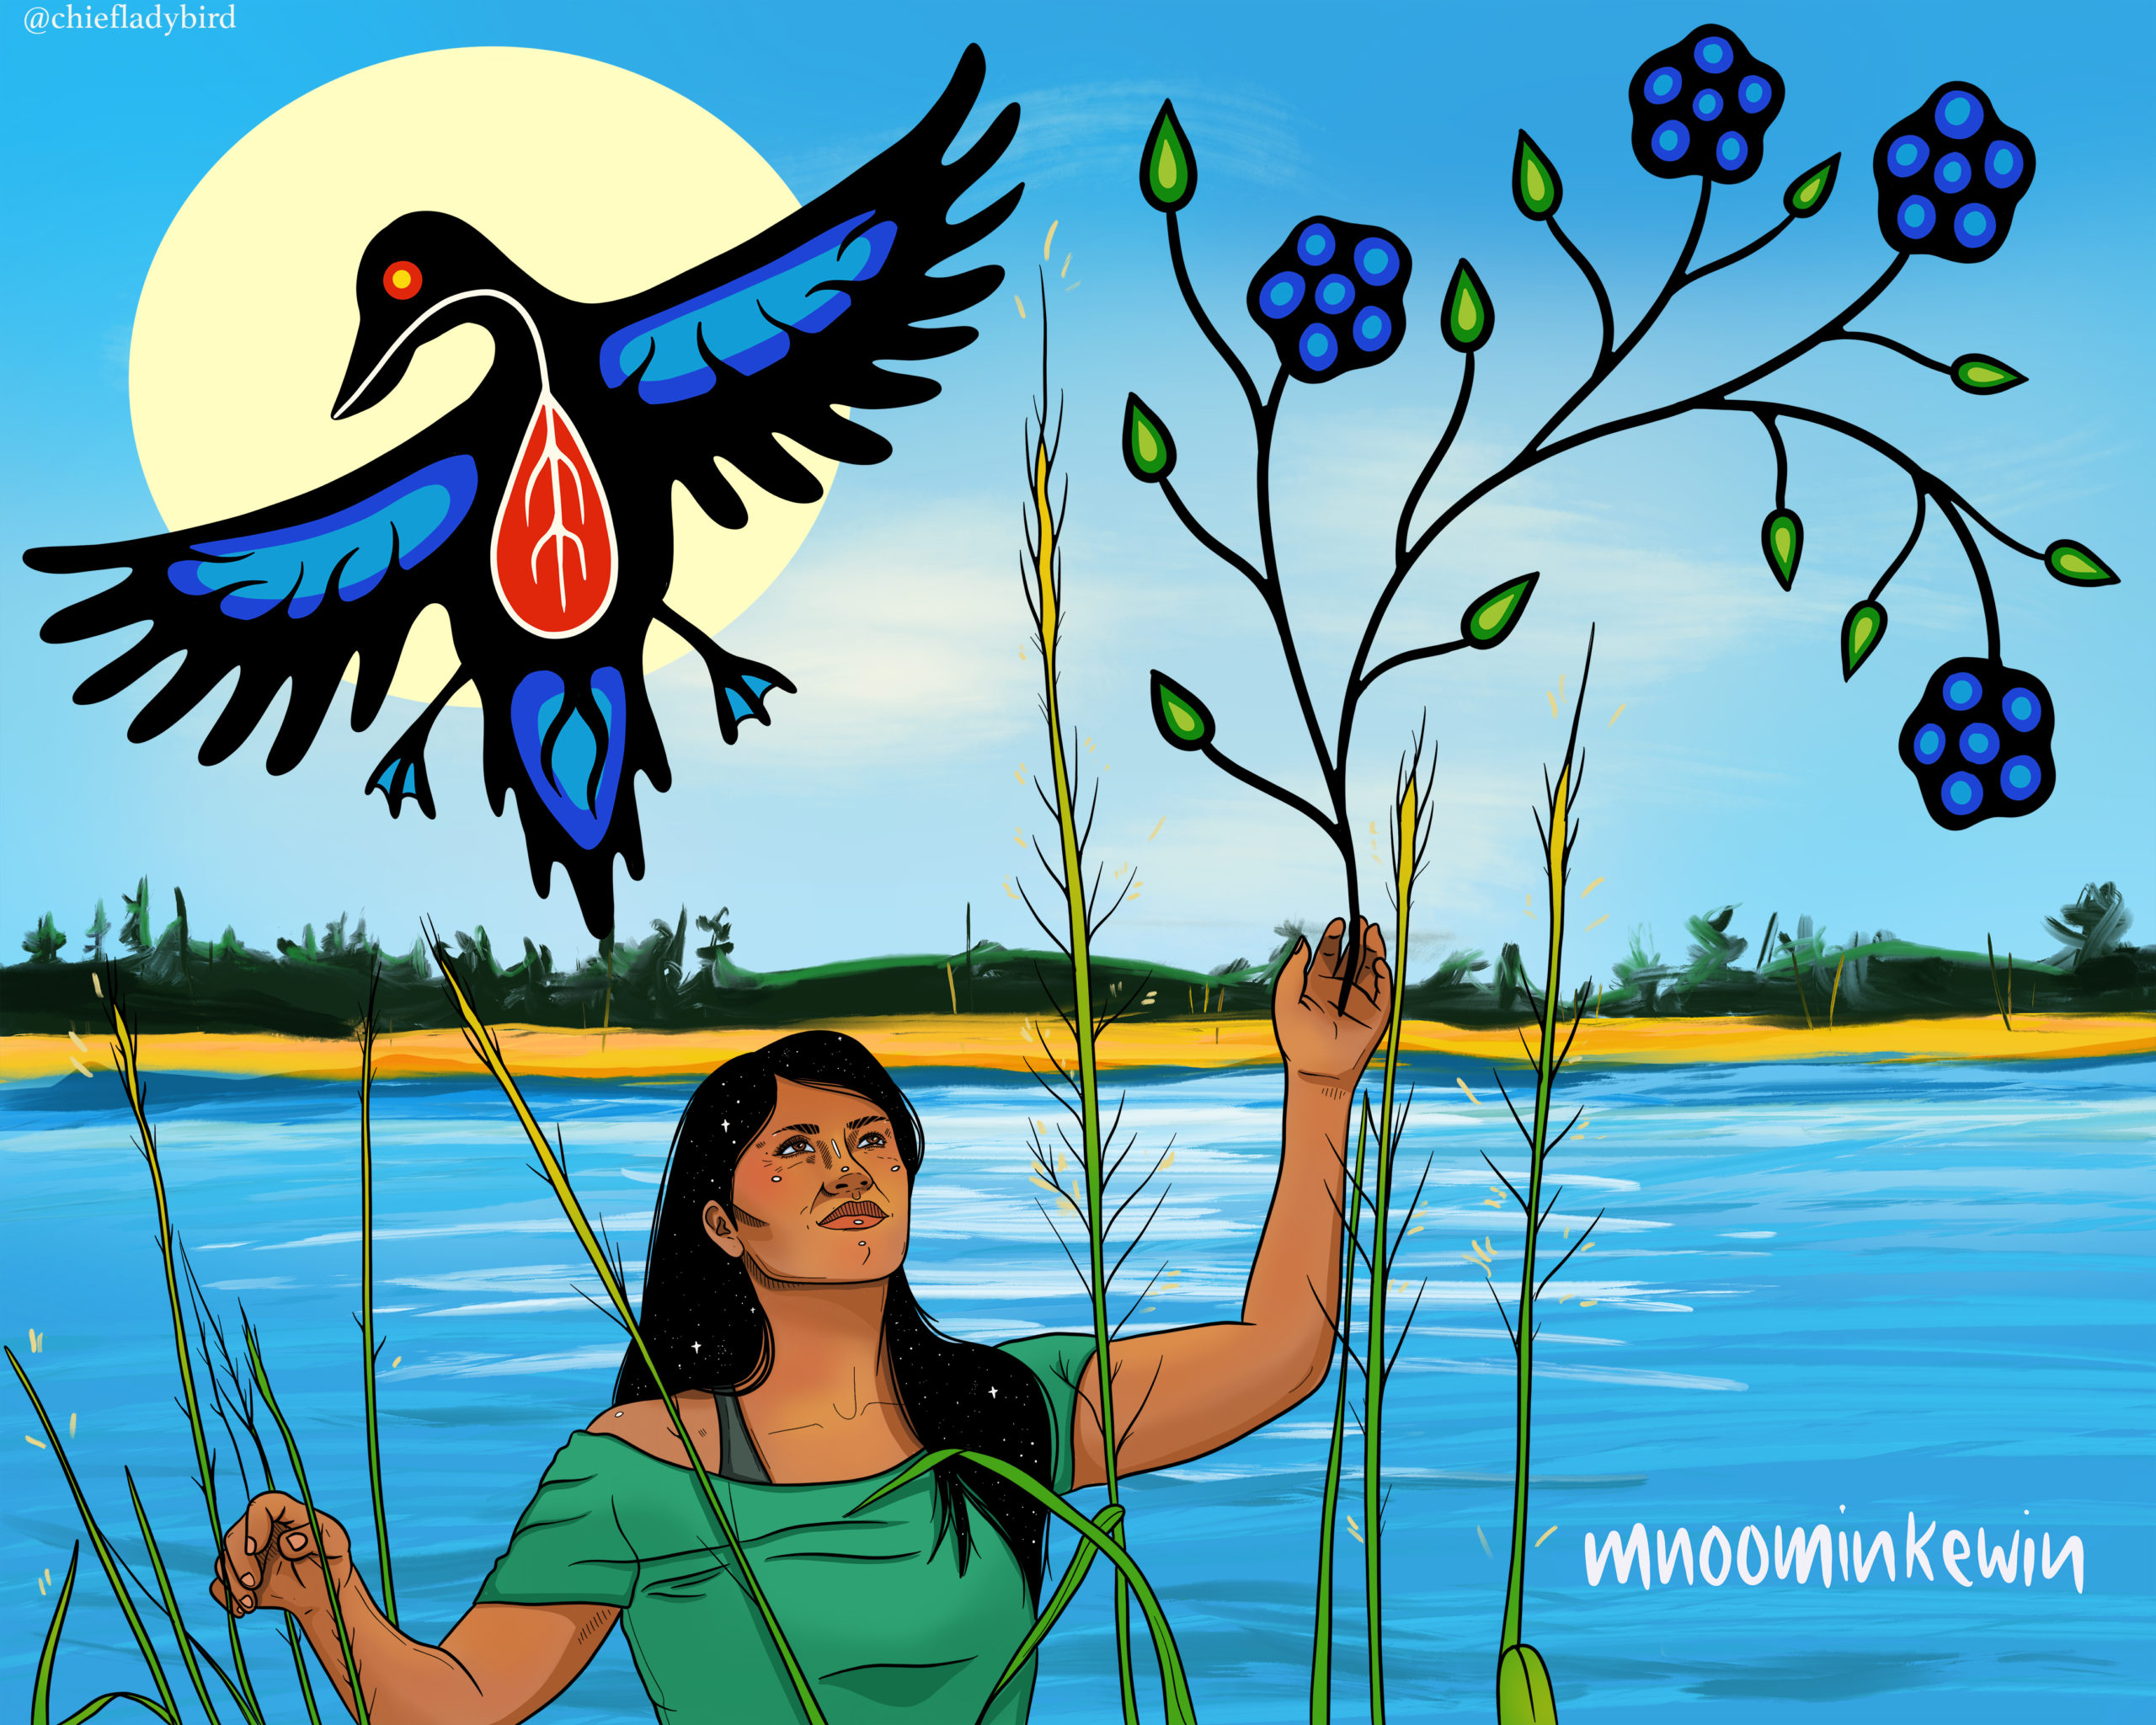 Mnoominkewin Mnoominkewin artwork by Chief Lady Bird in the photo.